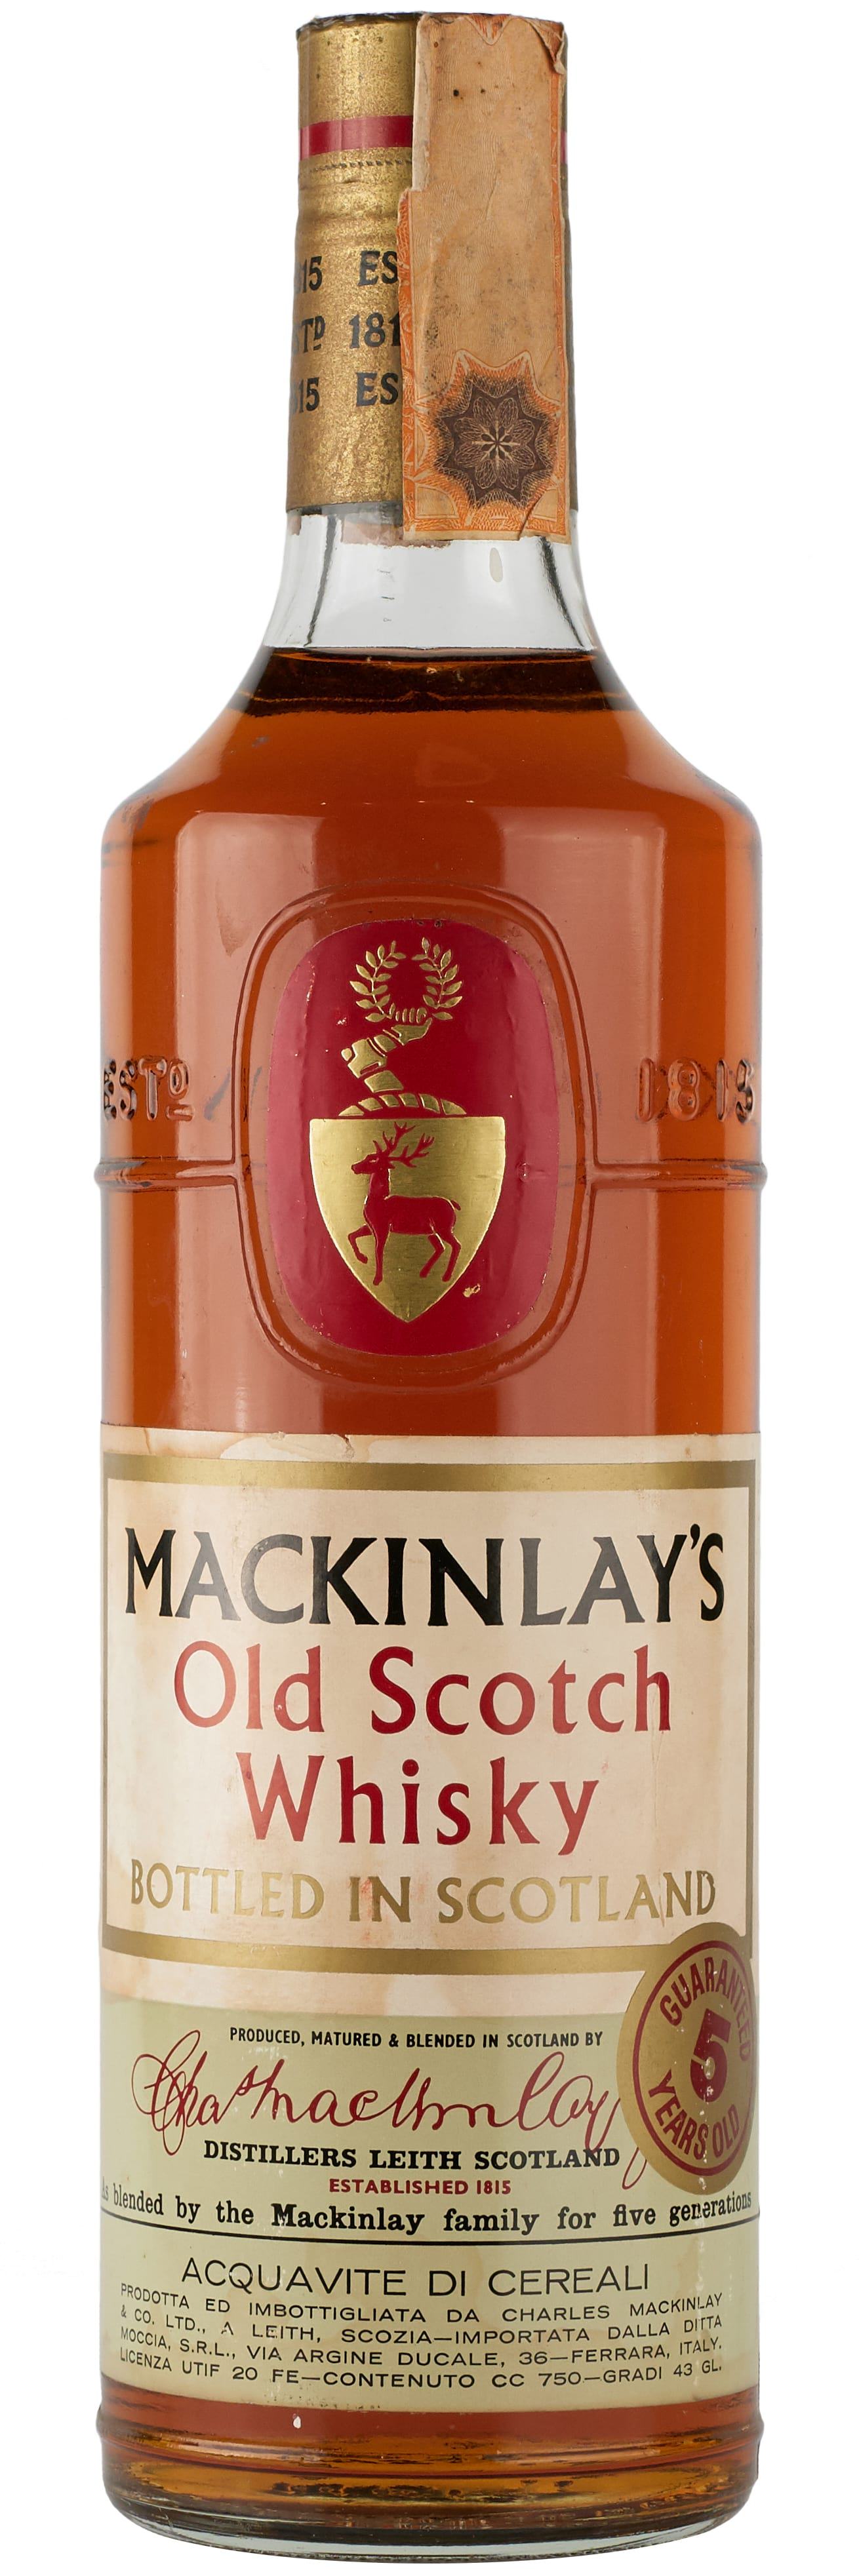 MacKinlay's Old Scotch Whisky 5 Years Old фото